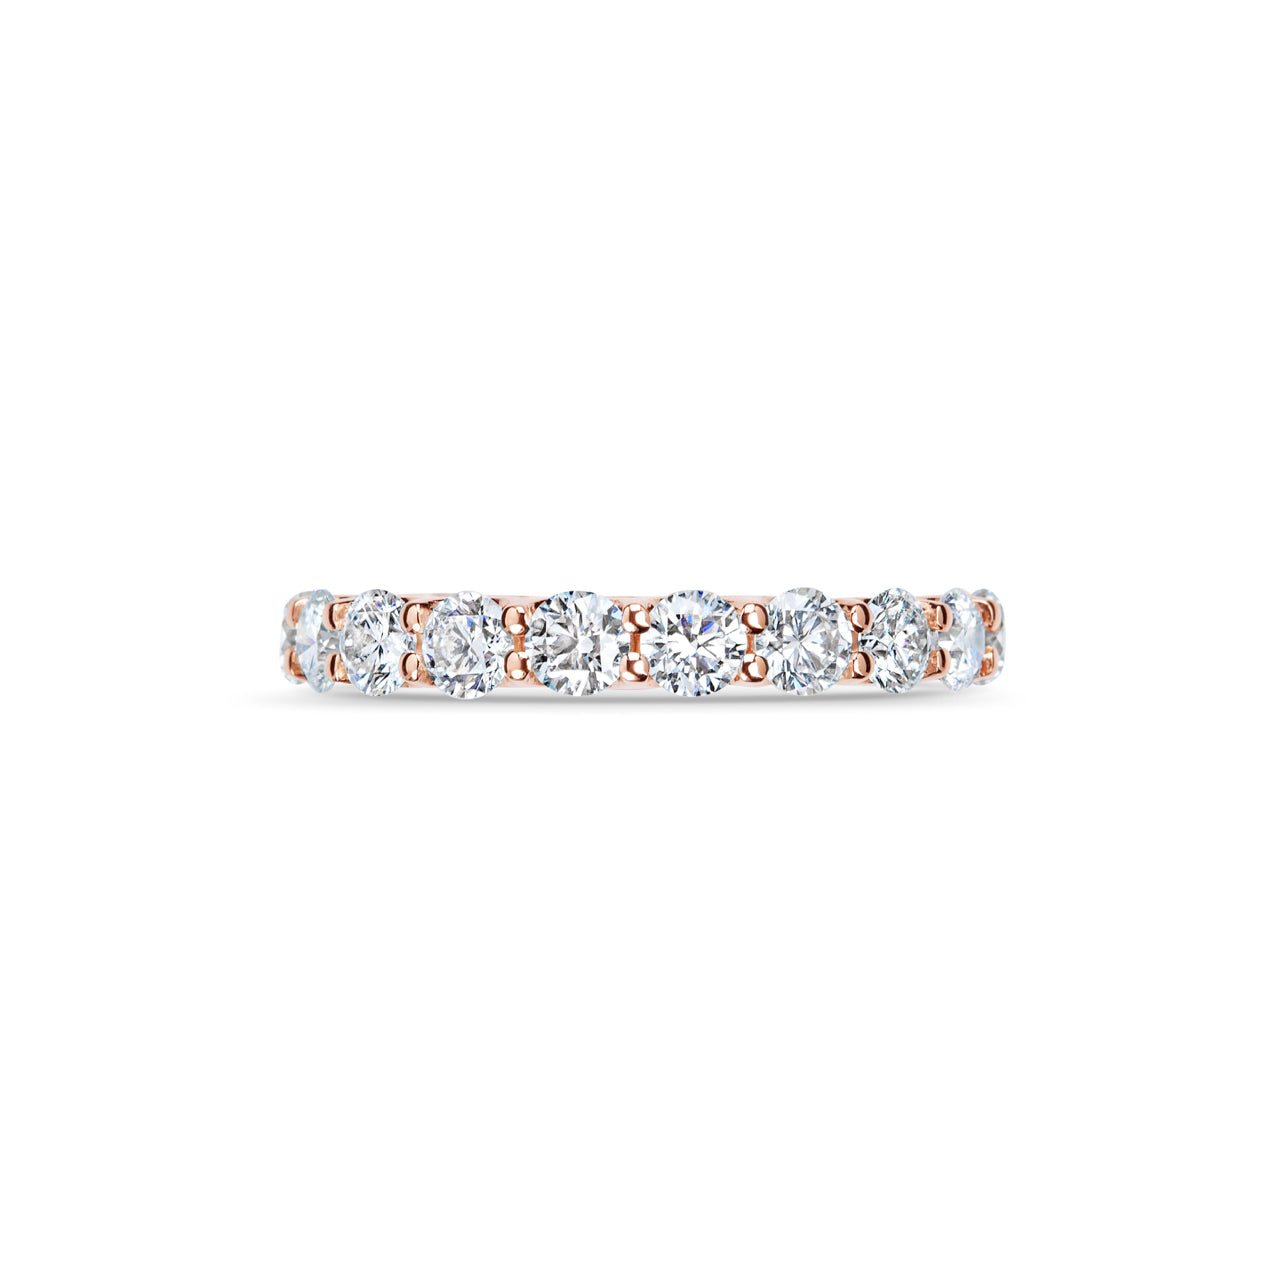 ELISE eternity band